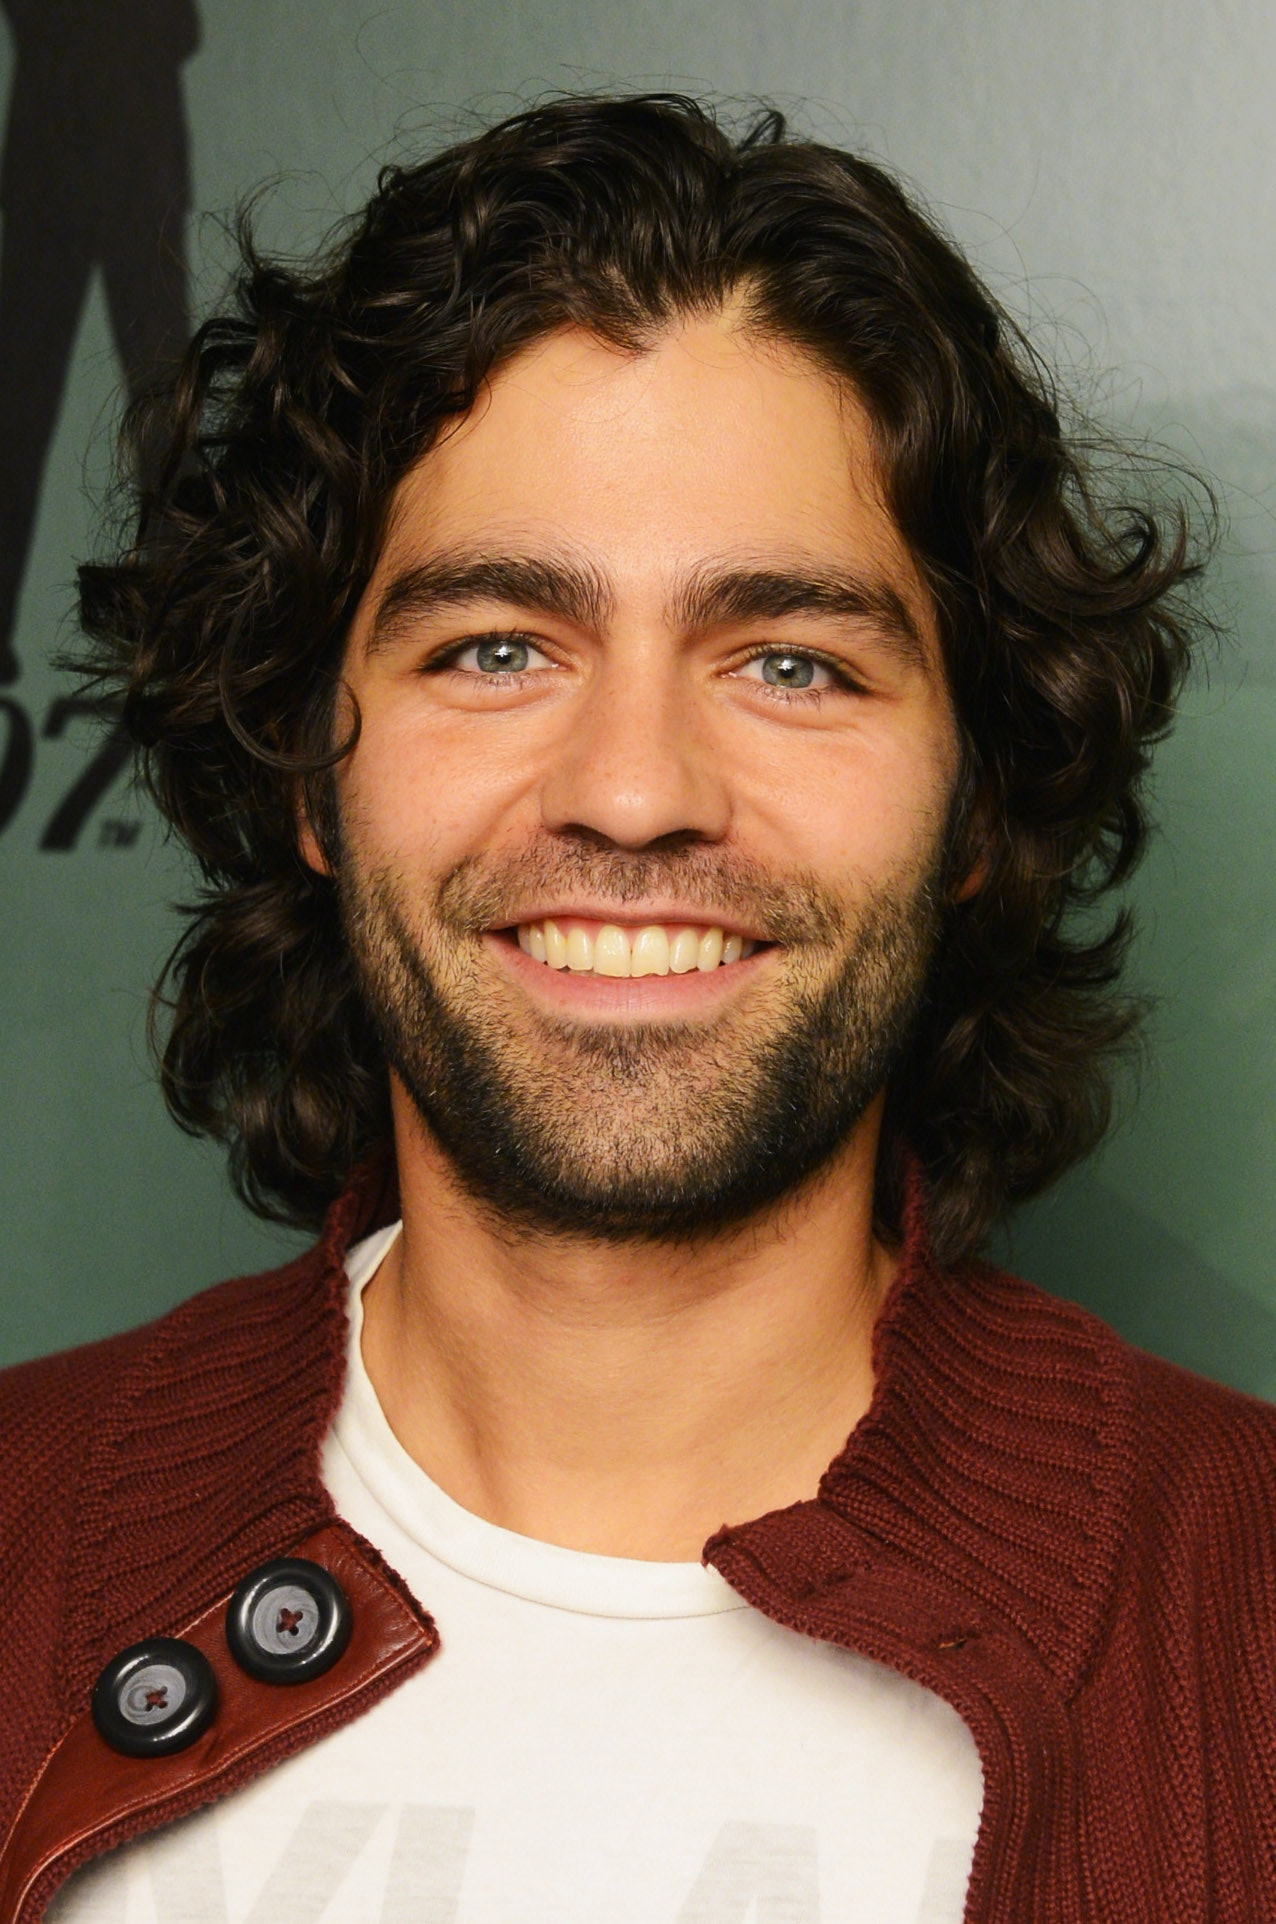 Adrian Grenier Buzzed His Hair So Lets Take A Moment To Remember